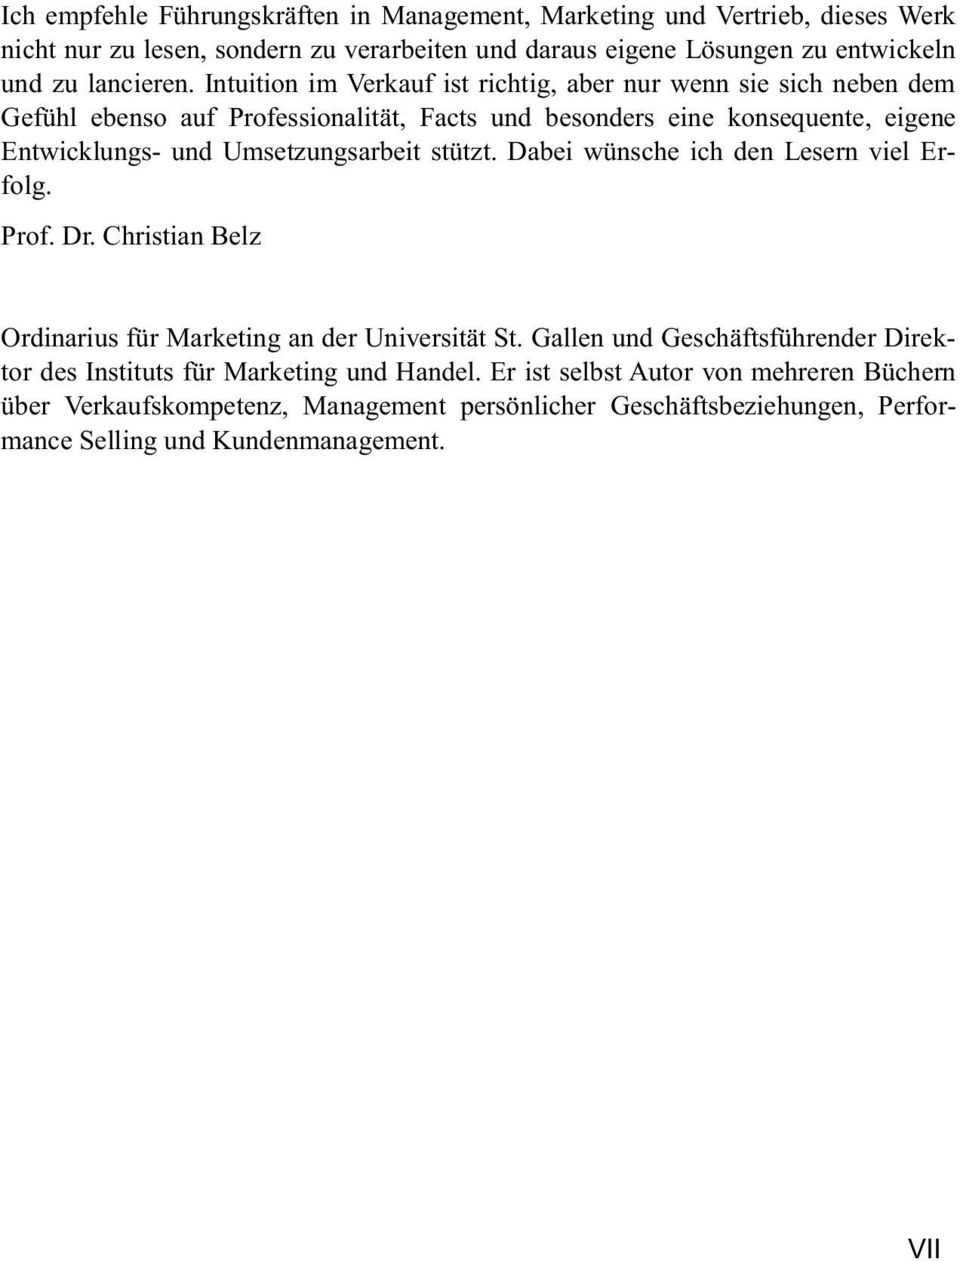 Umsetzungsarbeit stützt. Dabei wünsche ich den Lesern viel Erfolg. Prof. Dr. Christian Belz Ordinarius für Marketing an der Universität St.